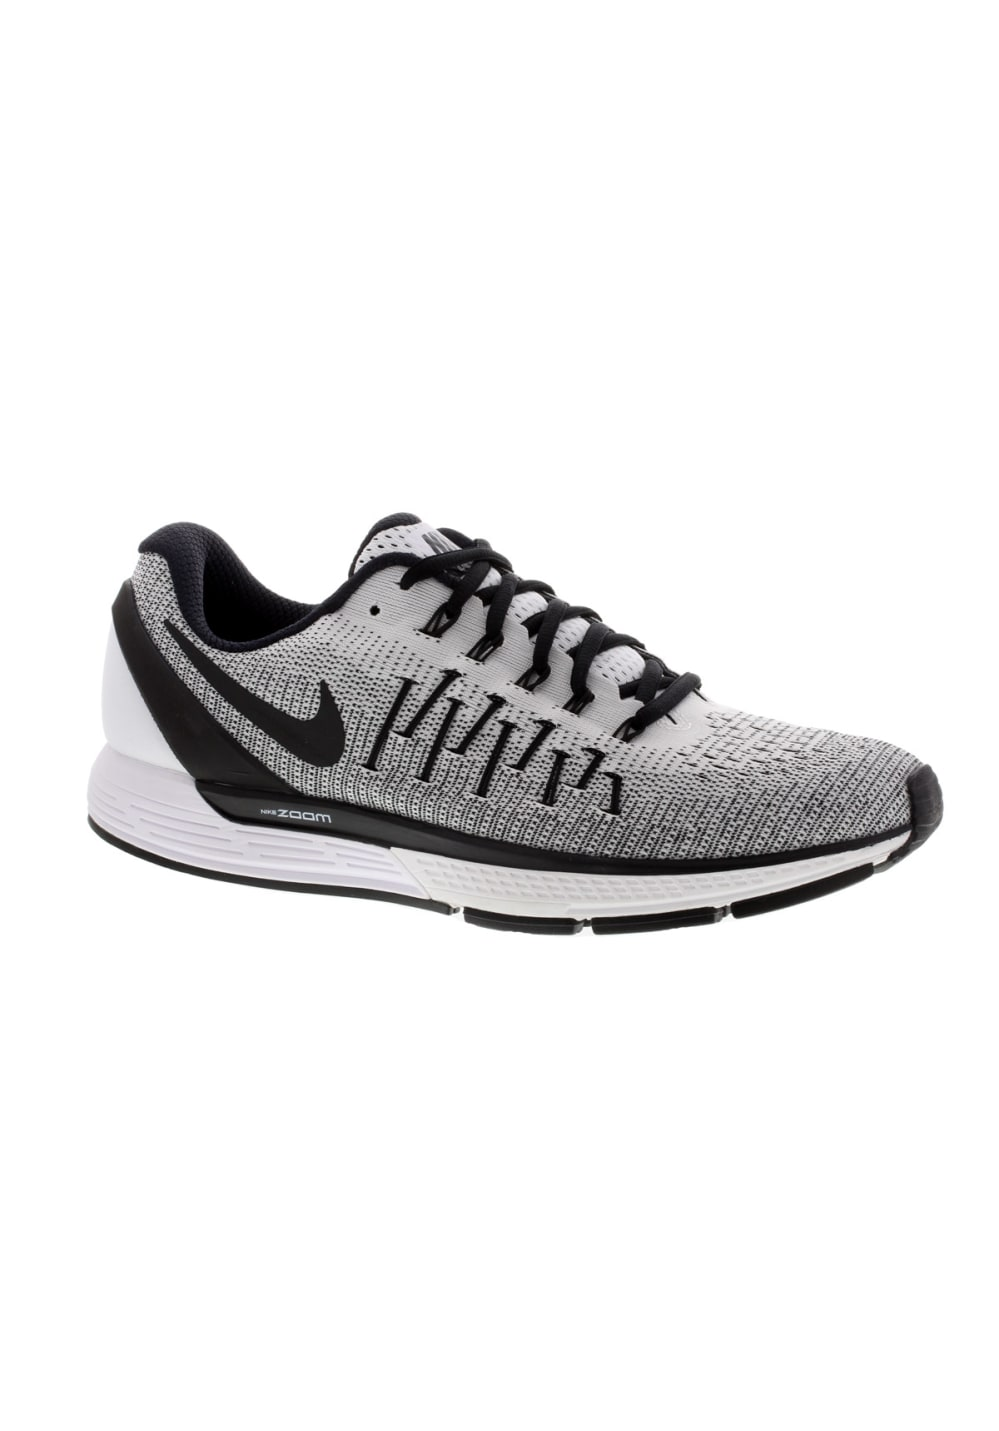 promo code 2a811 c21a5 Next. -60%. Nike. Air Zoom Odyssey 2 - Running shoes ...